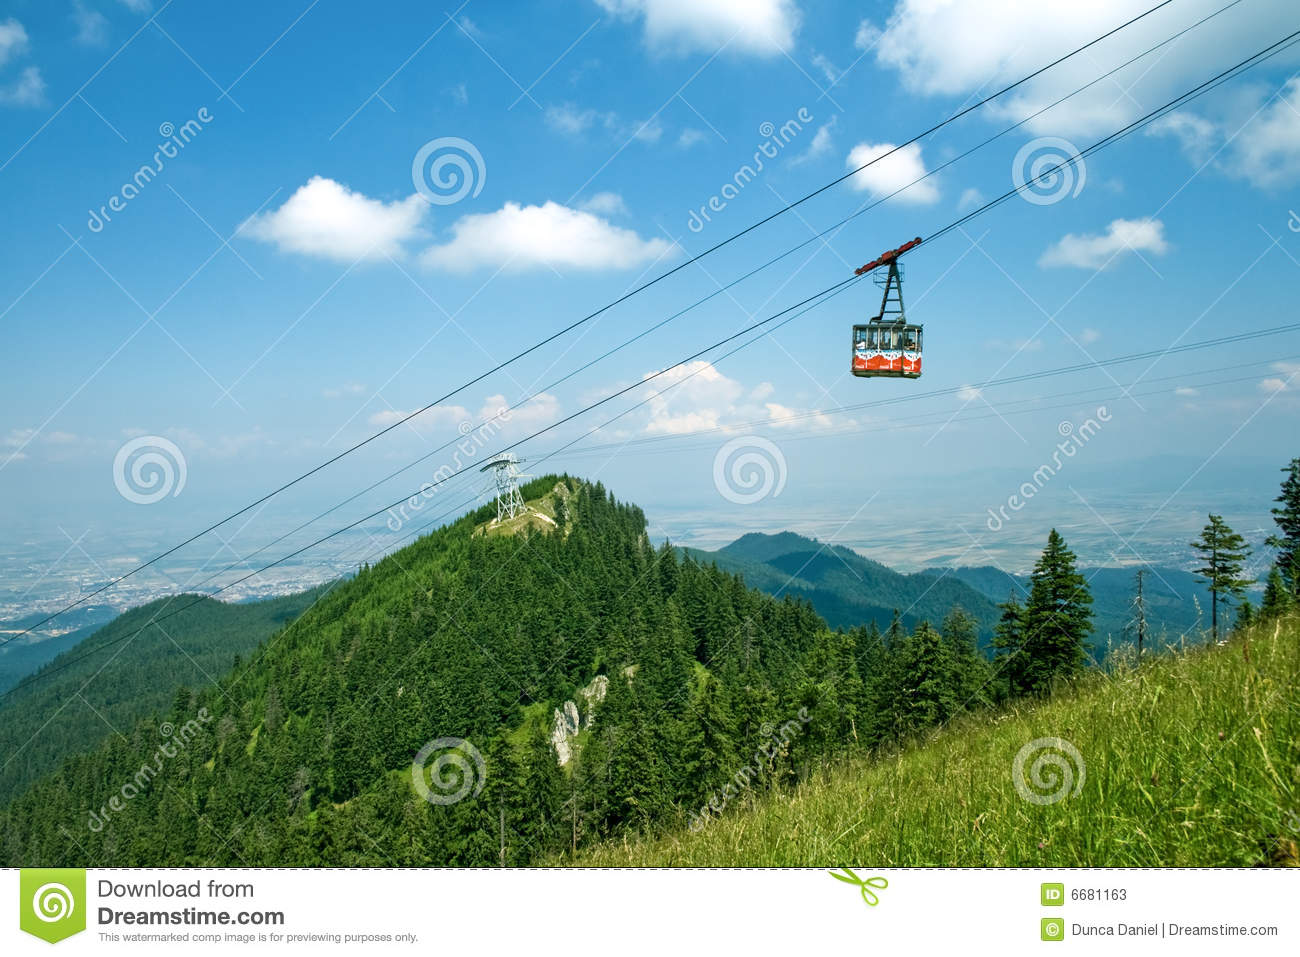 Splendid mountain view - cable cabin and sky